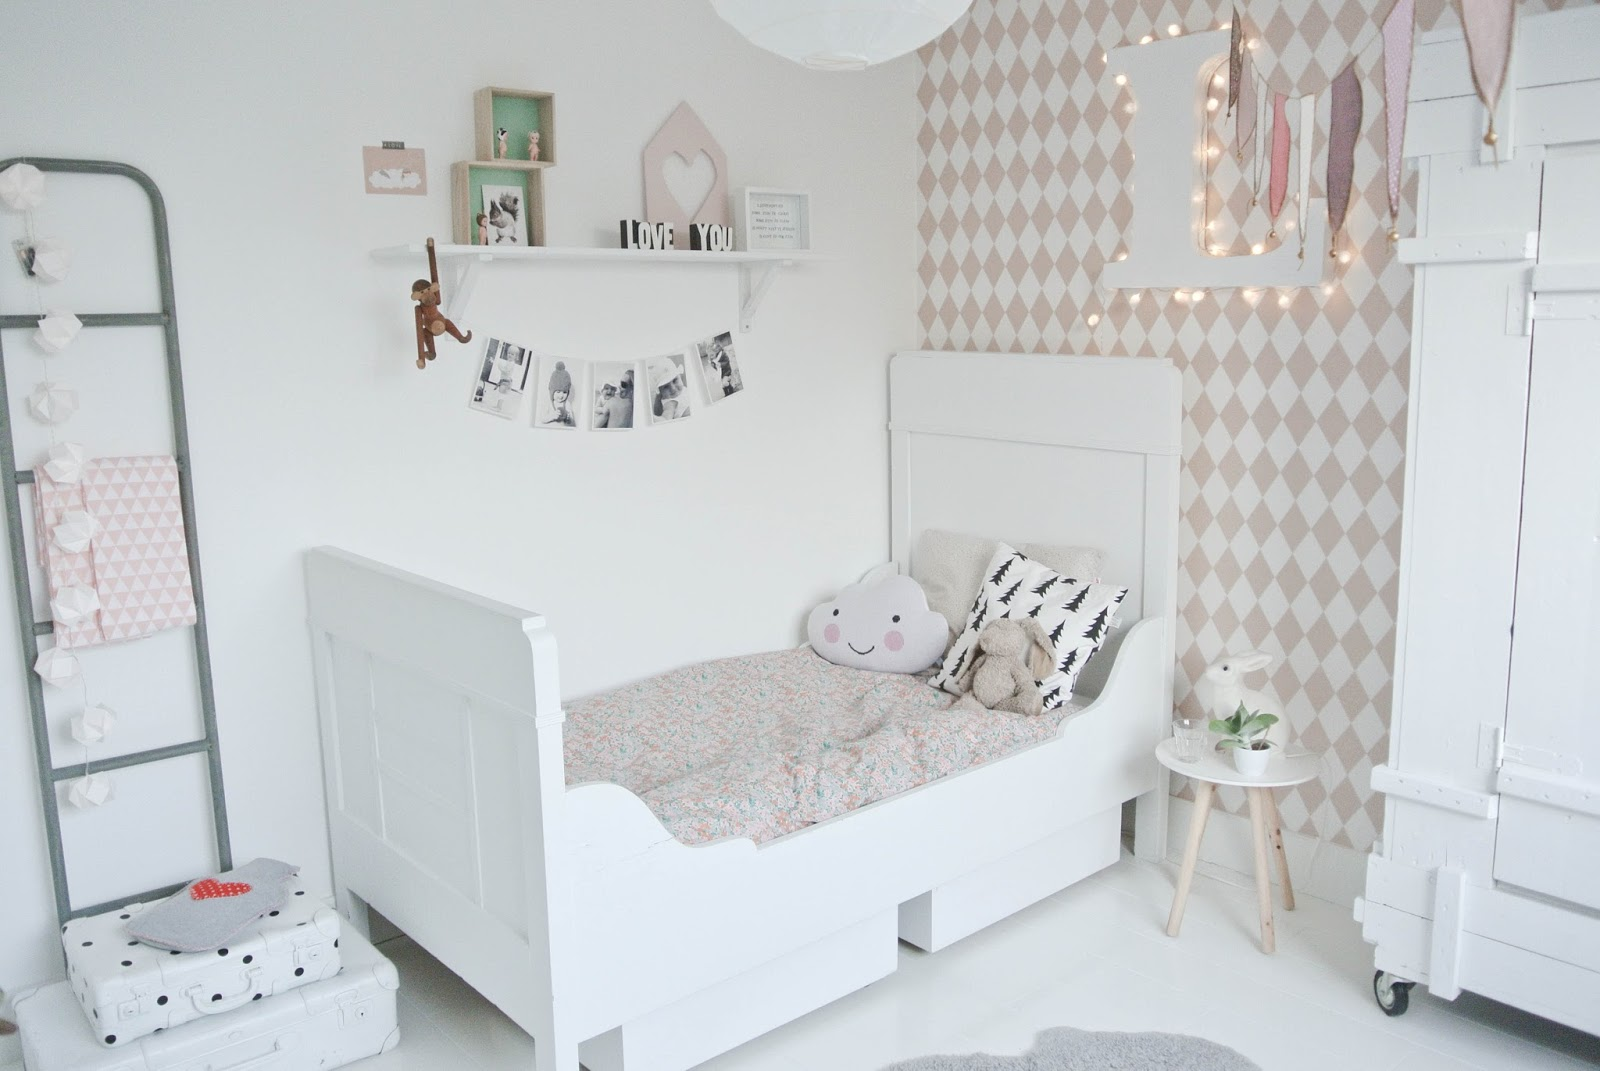 Lekker fris make over lola 39 s kamer deel 1 - Ideas para decorar dormitorio infantil ...